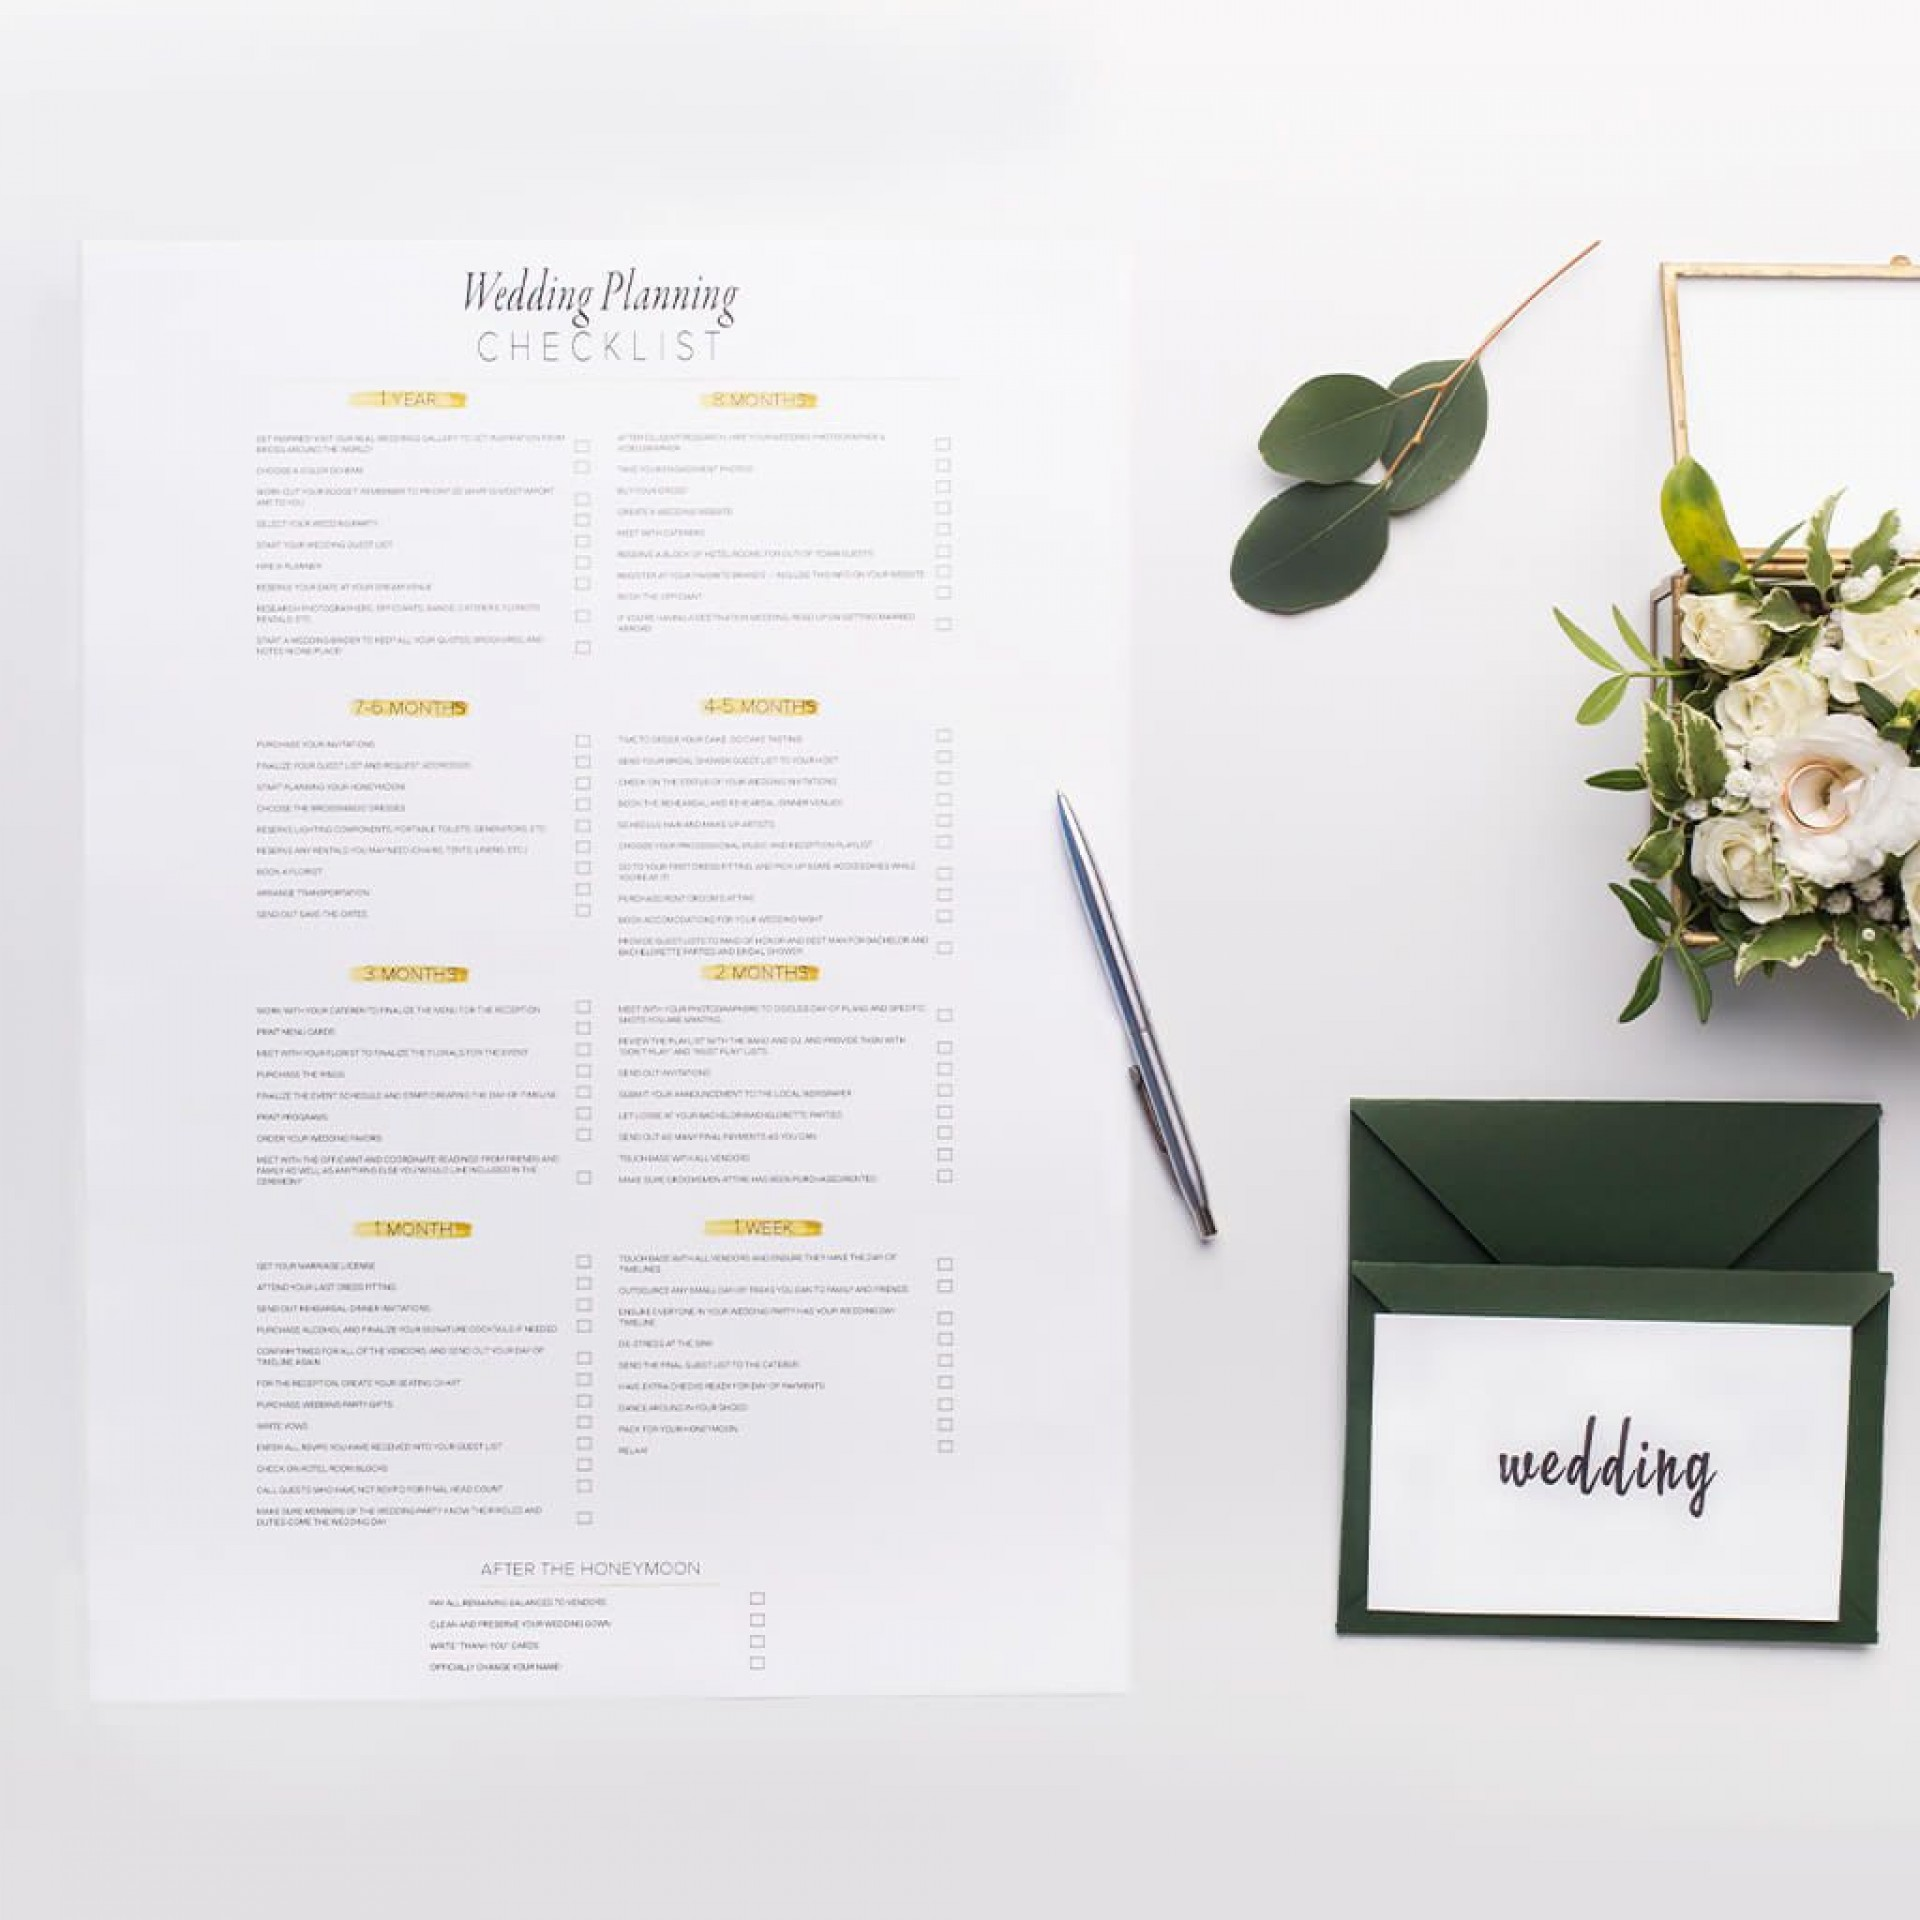 007 Frightening Wedding Timeline For Guest Template Free Sample  Download1920